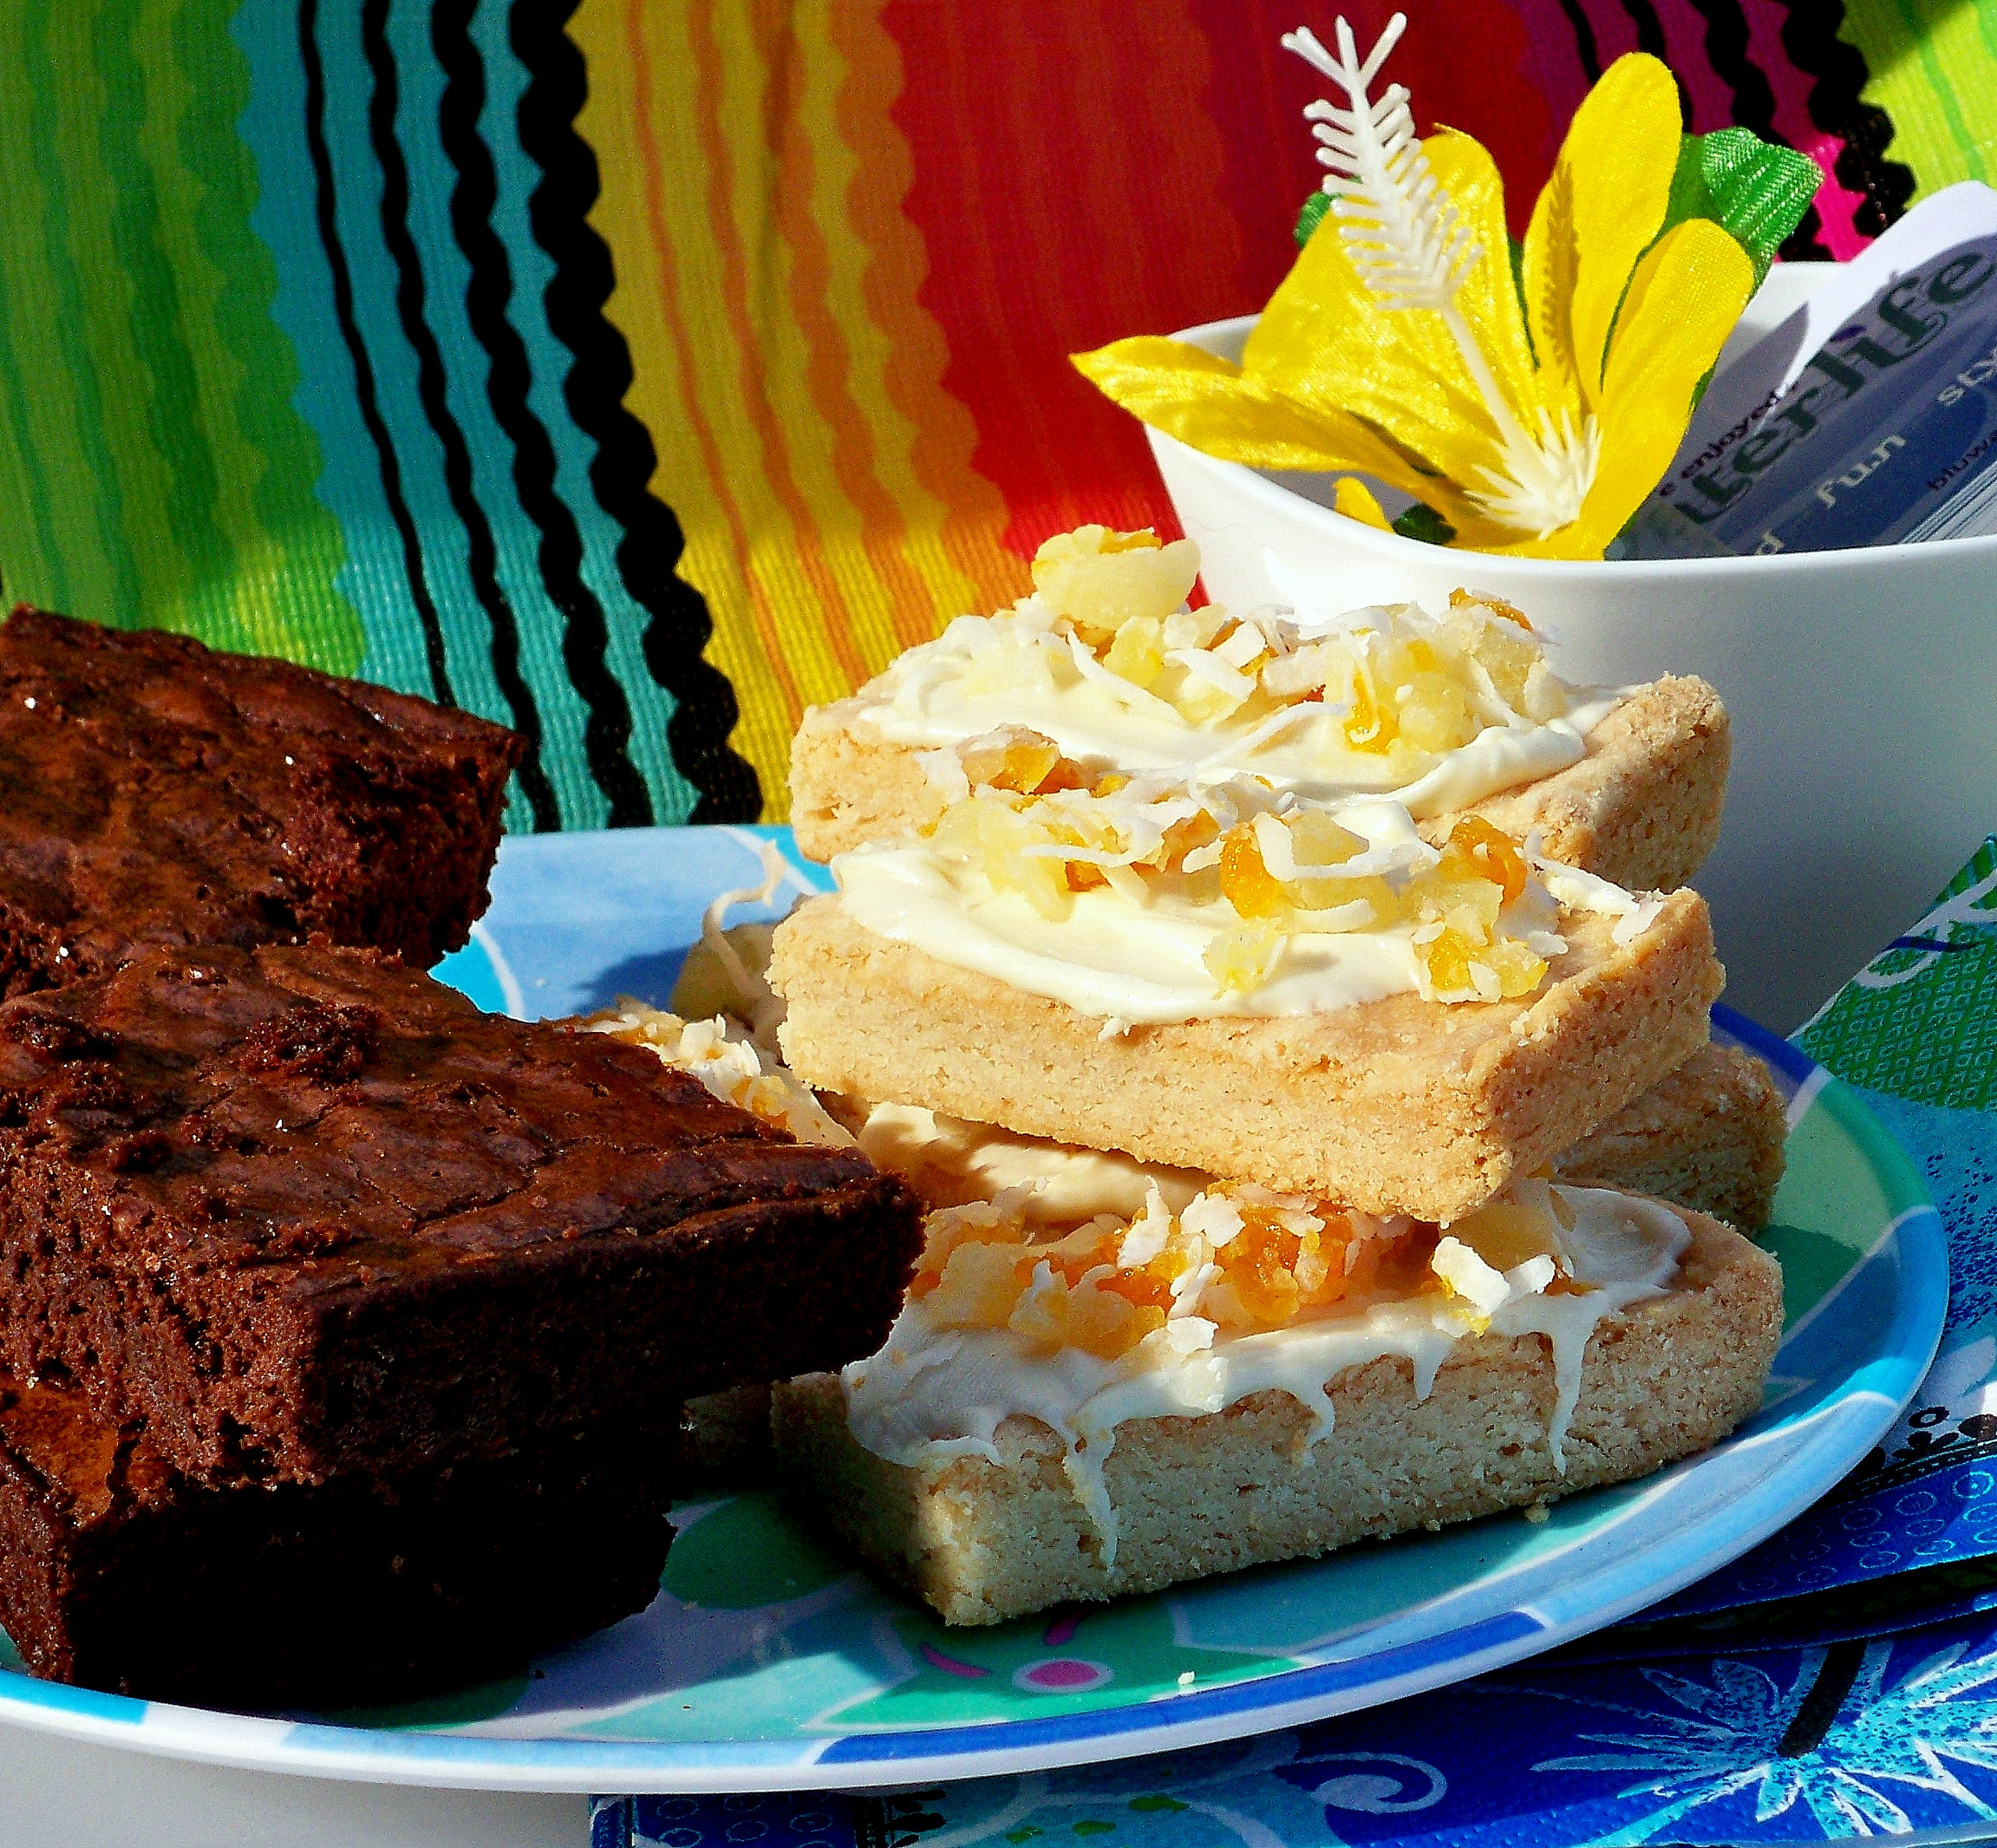 brownies & tropical shortbread cookies with white chocolate ~ YUM!